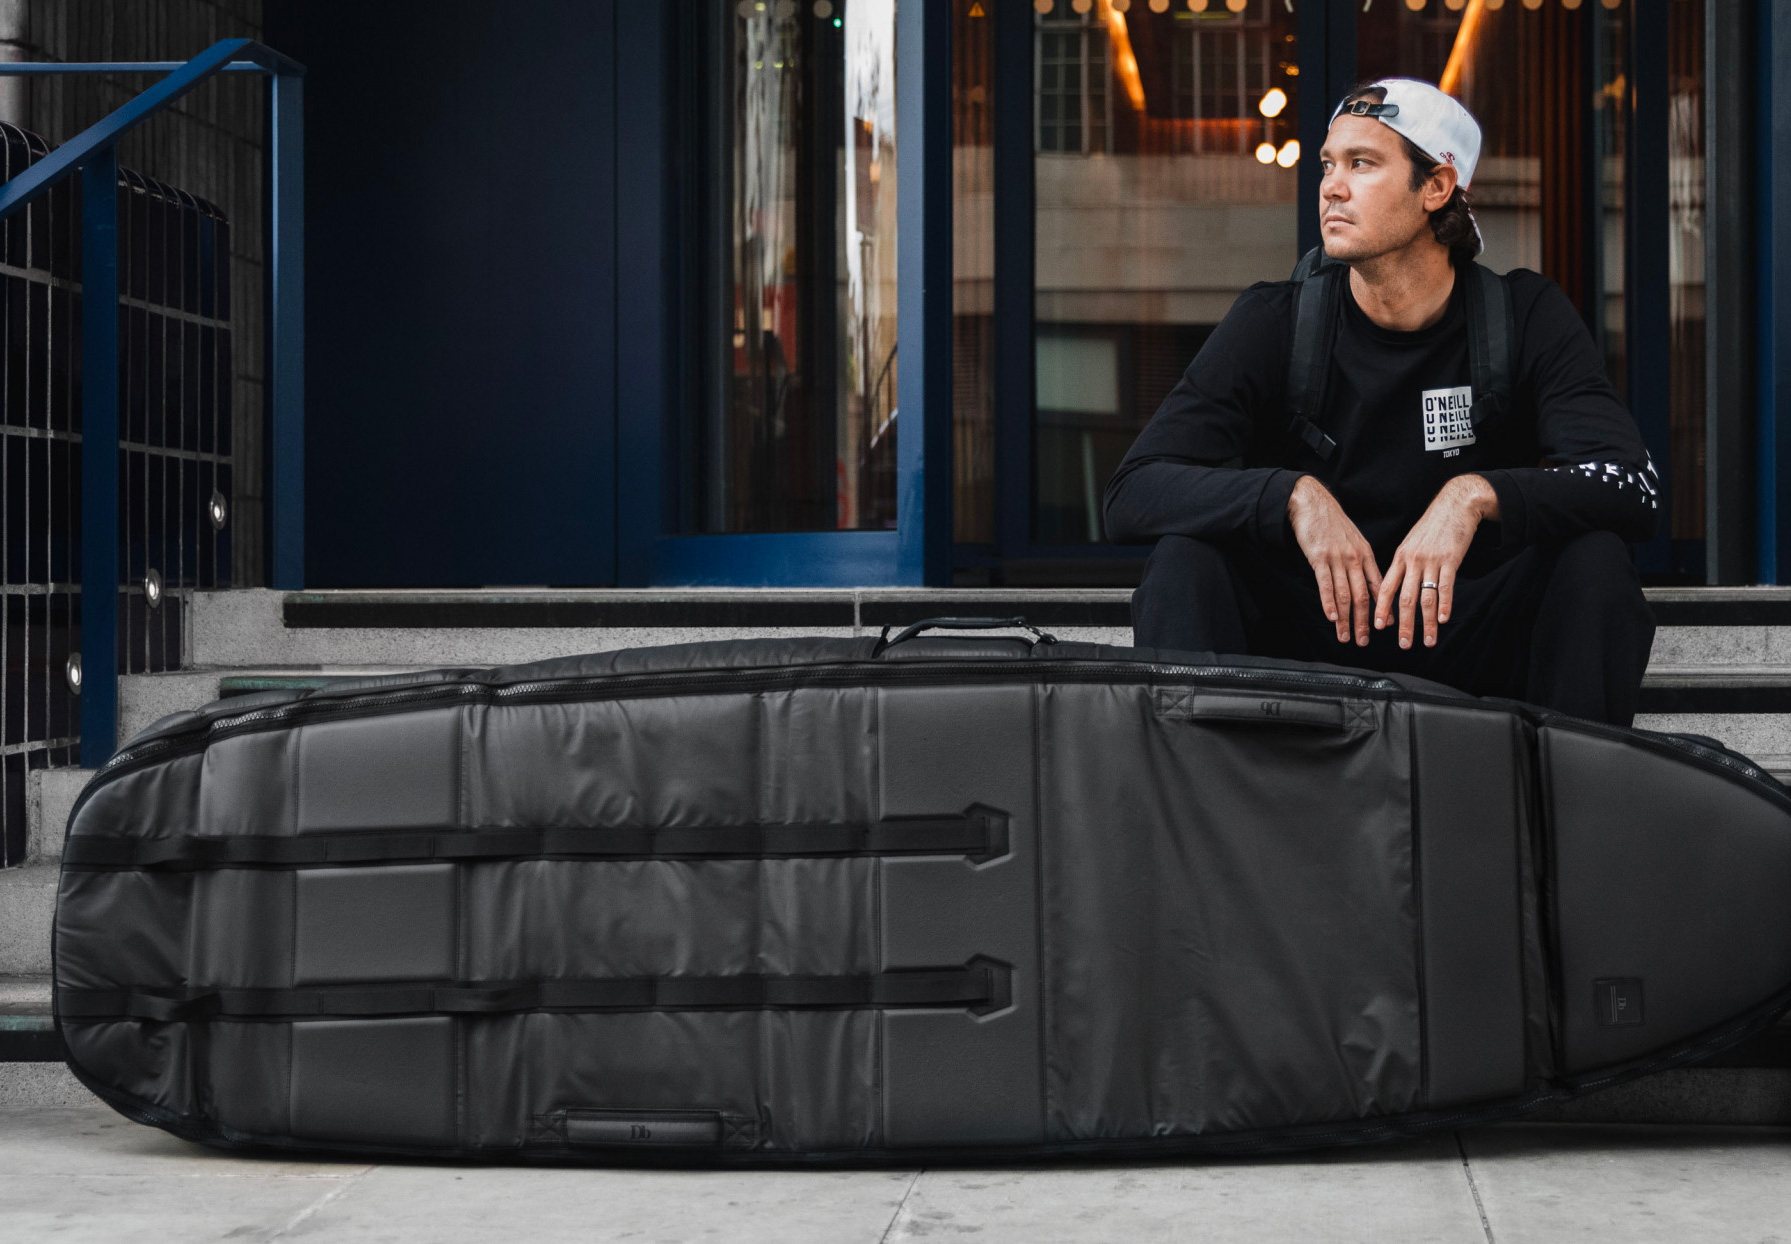 Db Surfboard Bags Keep the Precious Cargo Protected at werd.com